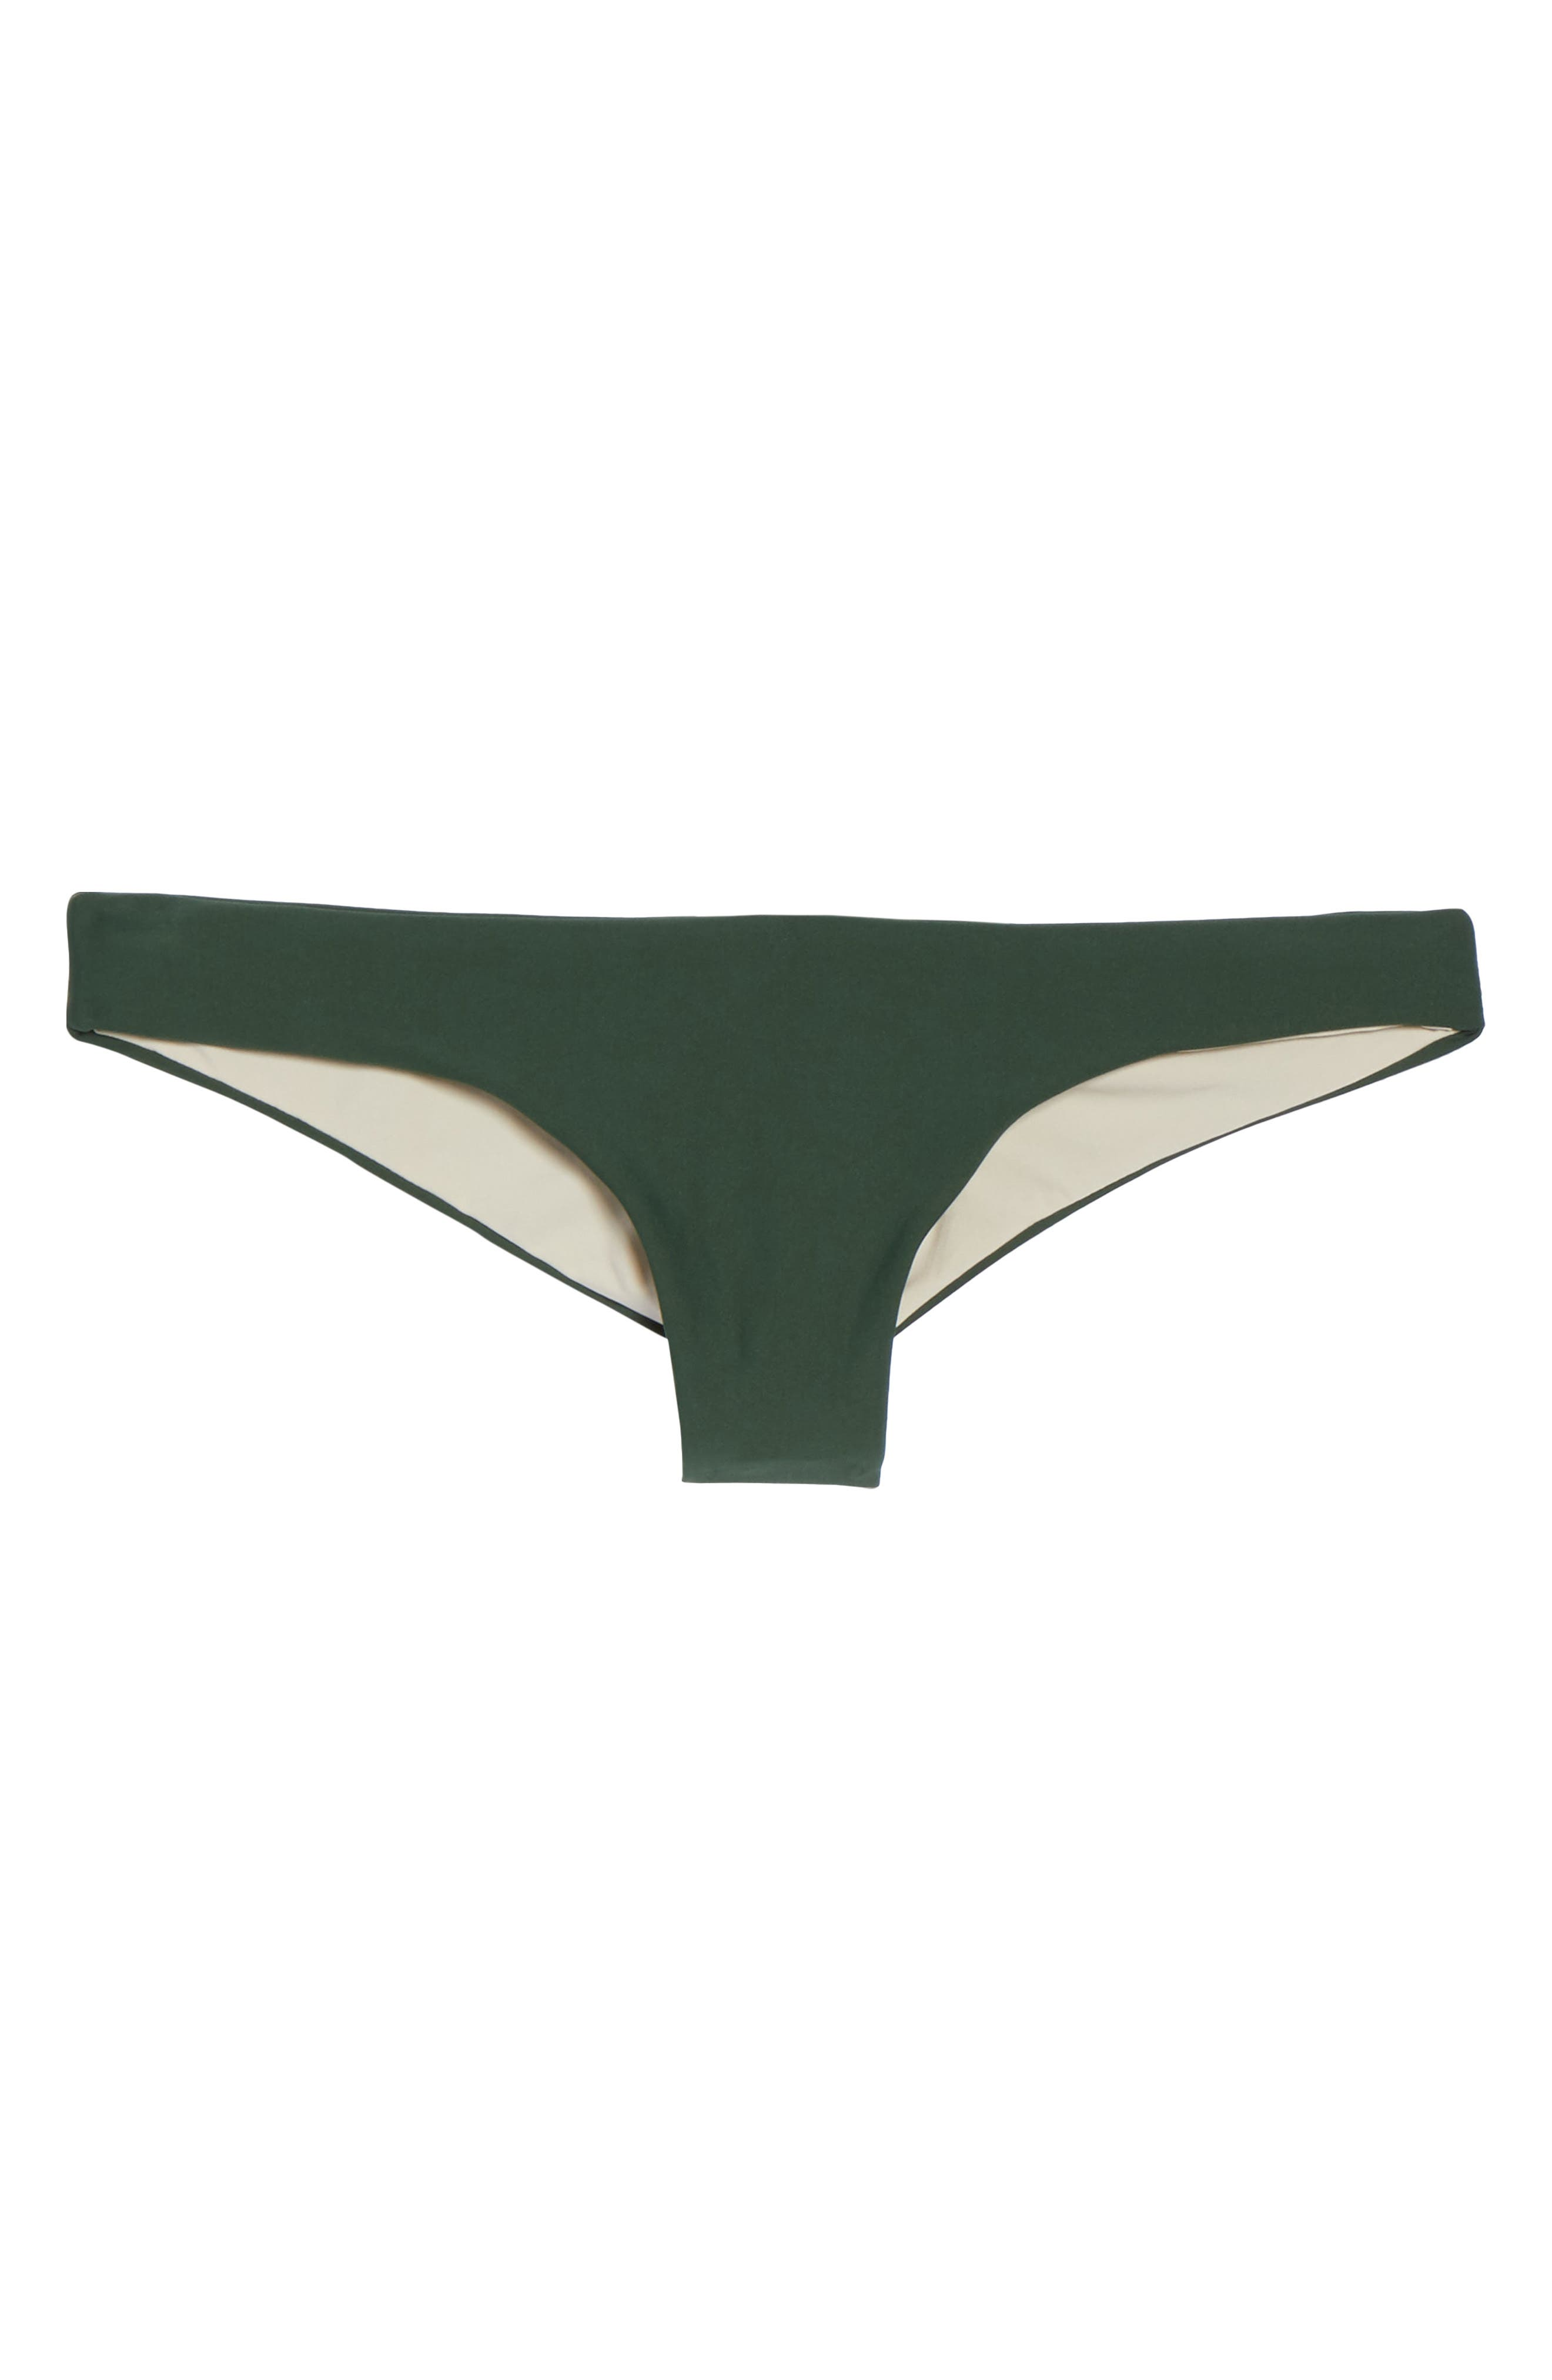 Ruched Bikini Bottoms,                             Alternate thumbnail 6, color,                             Army